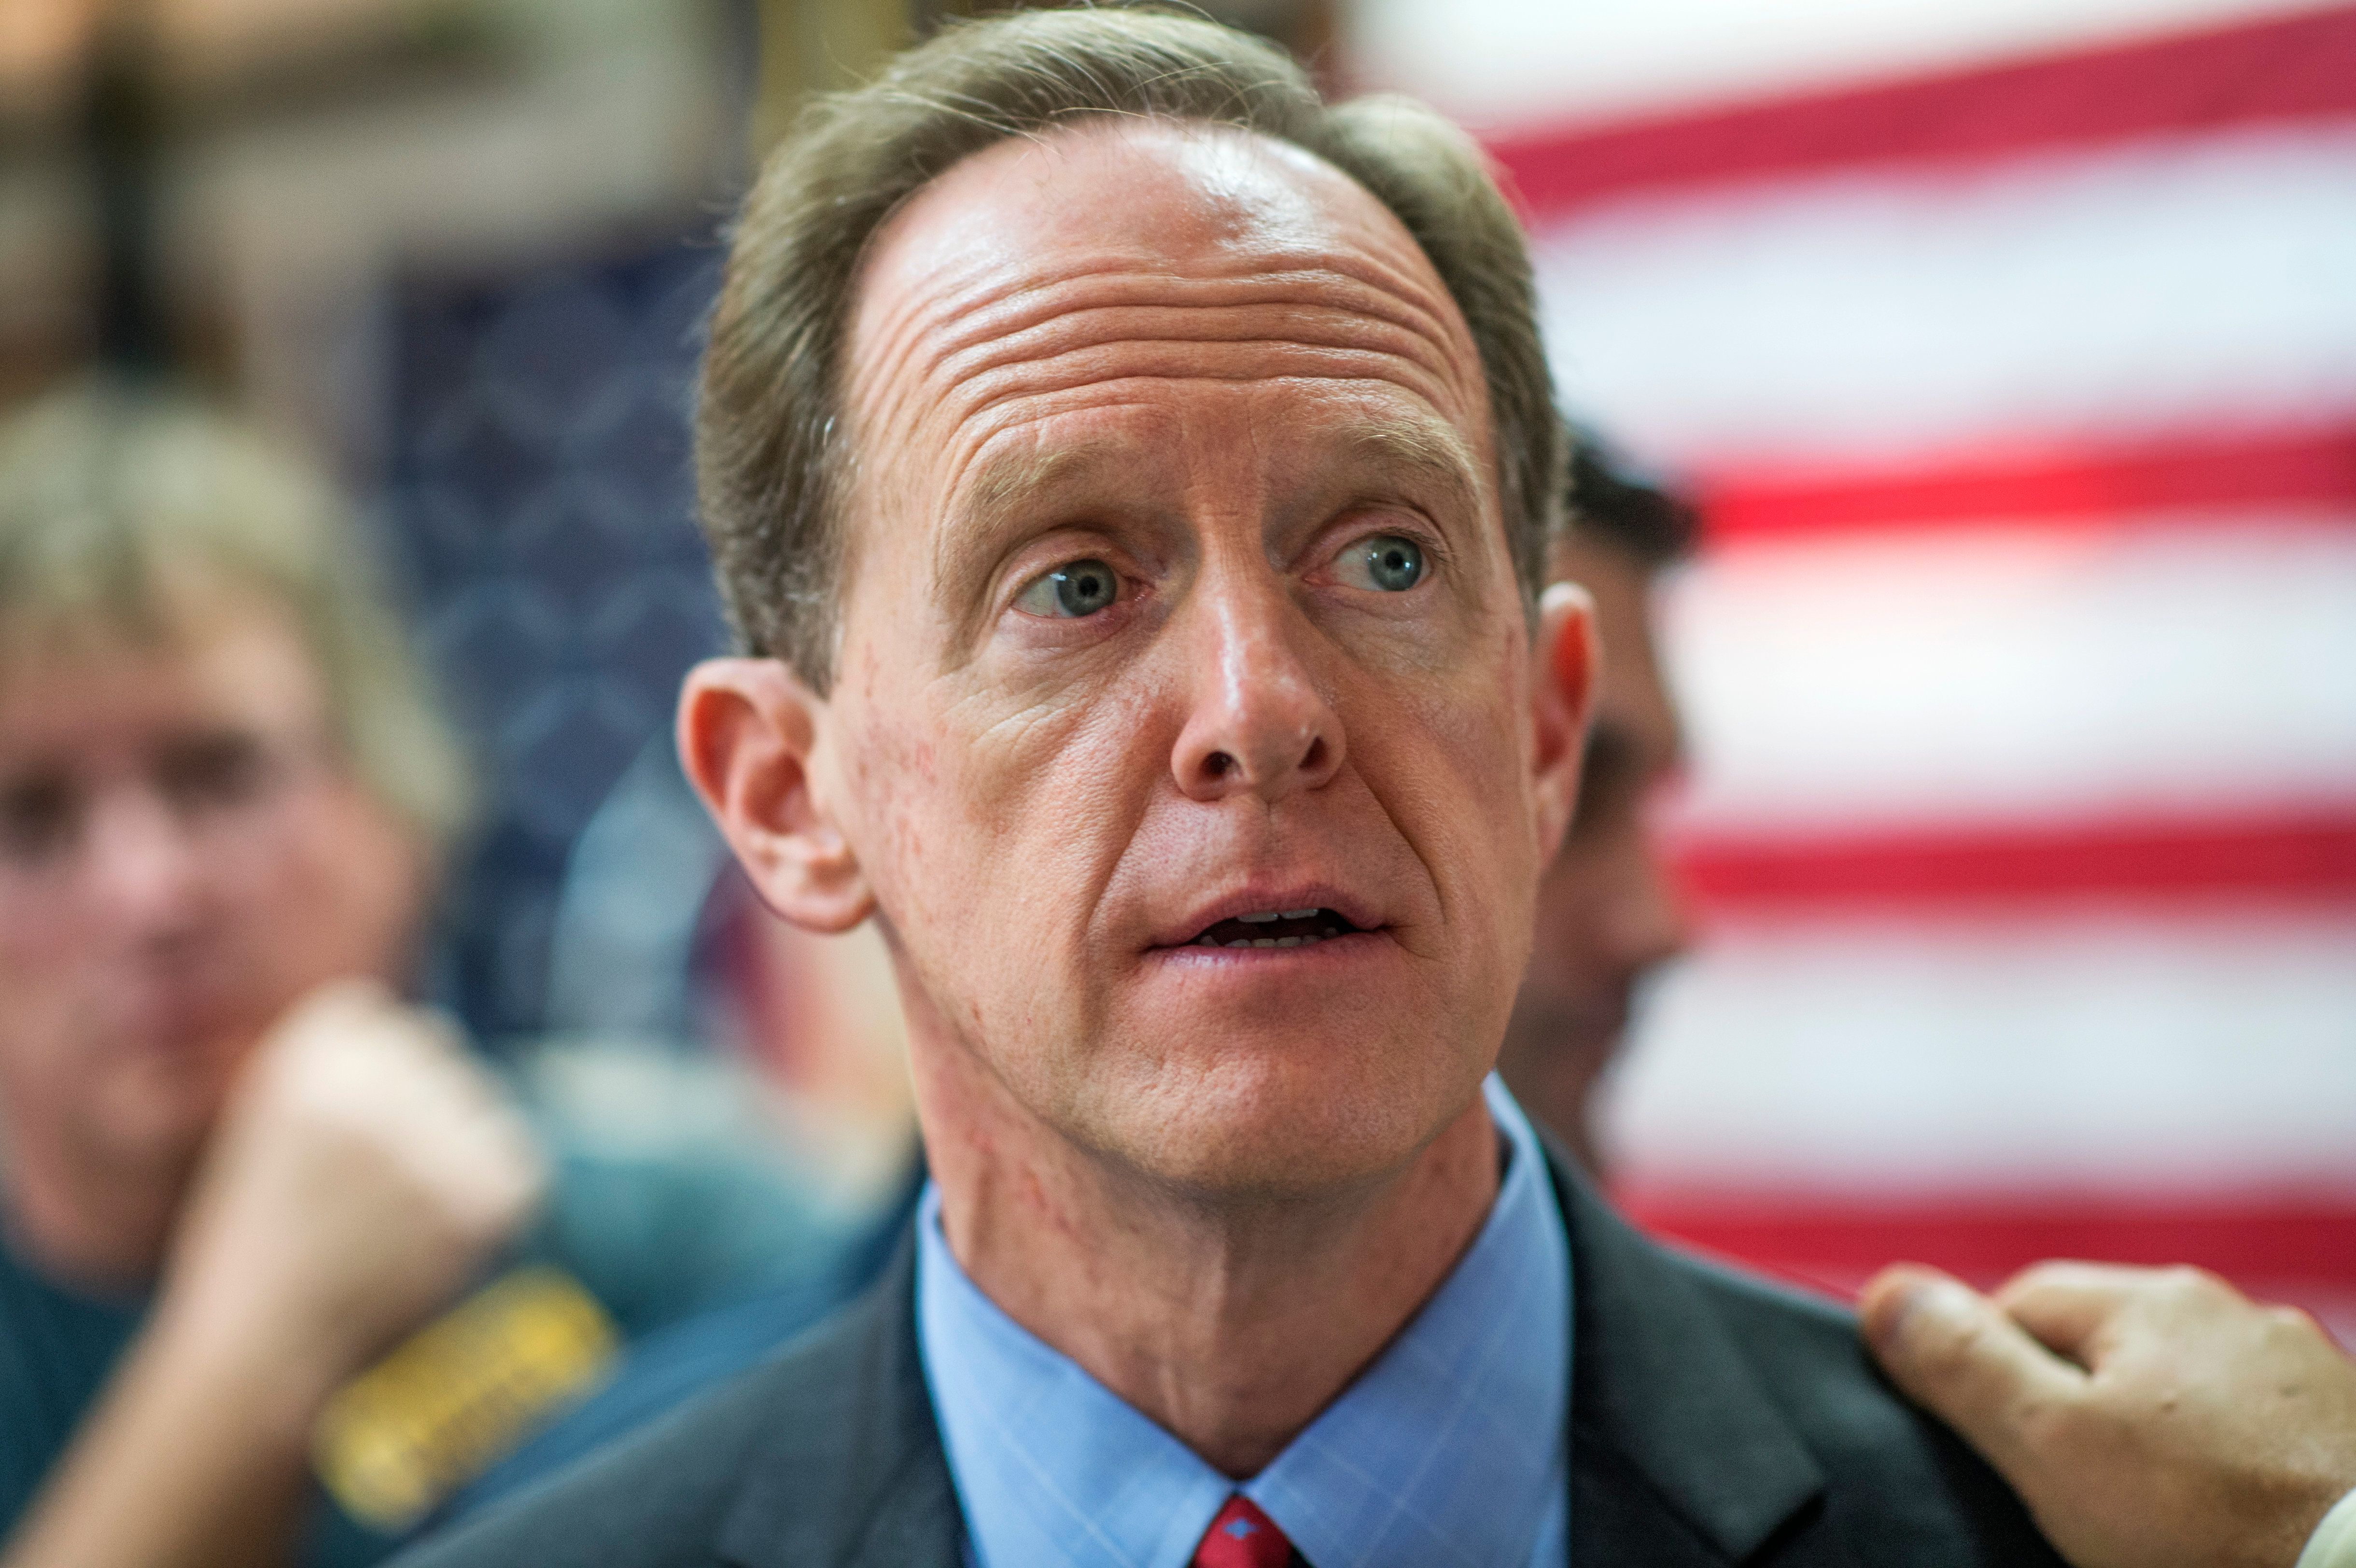 Sen. Pat Toomey (R-Pa.) has released one ad that's critical of Hillary Clinton, while another ad portrays Democrats in a more